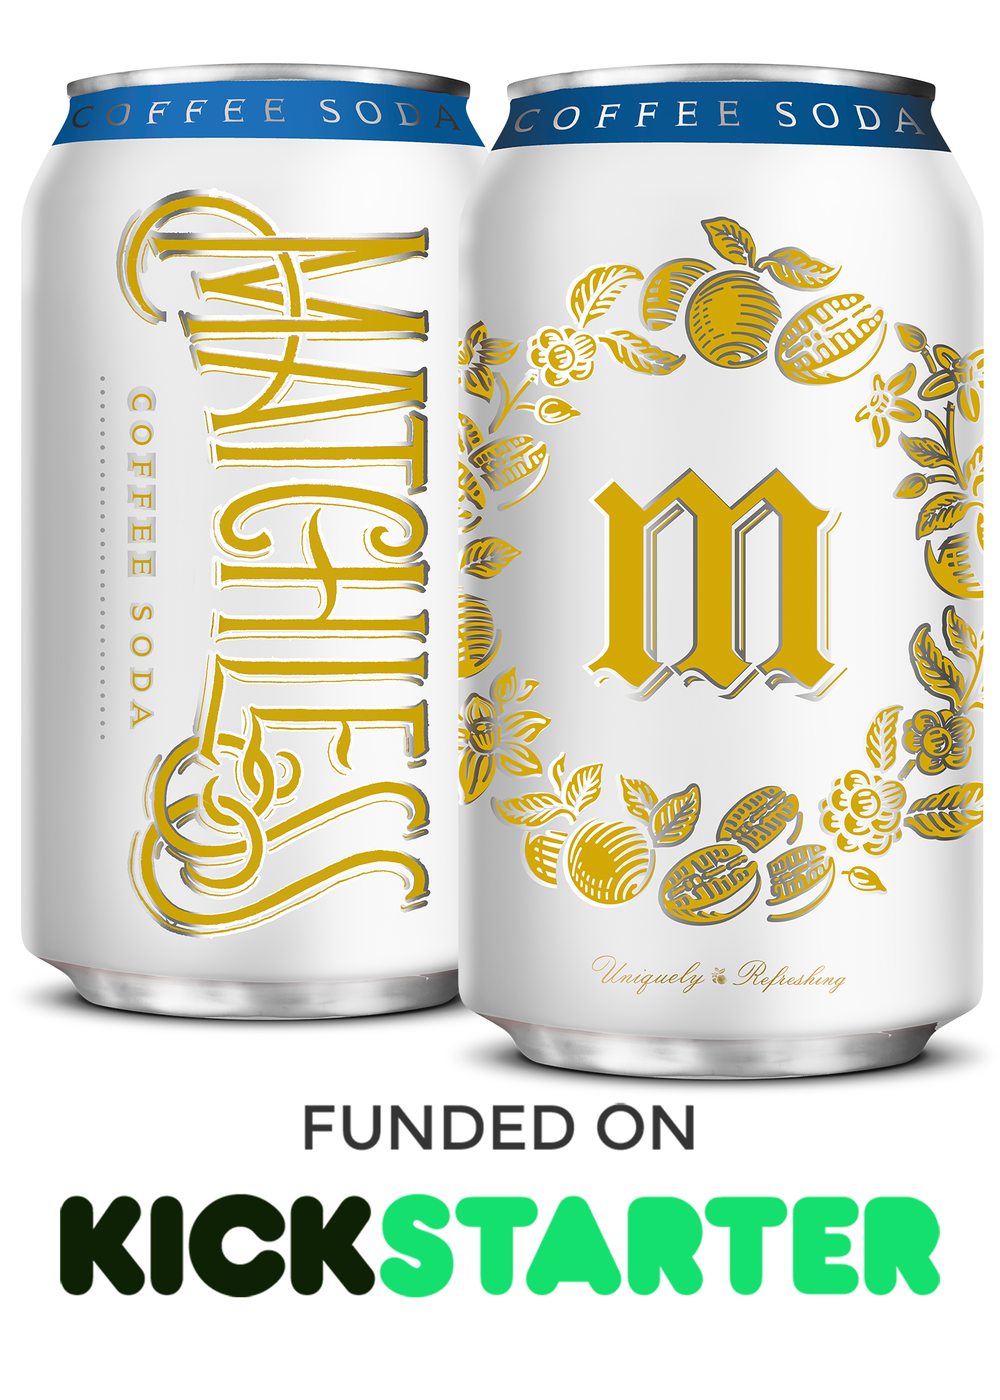 matchless-coffee-soda-can-kickstarter-funded